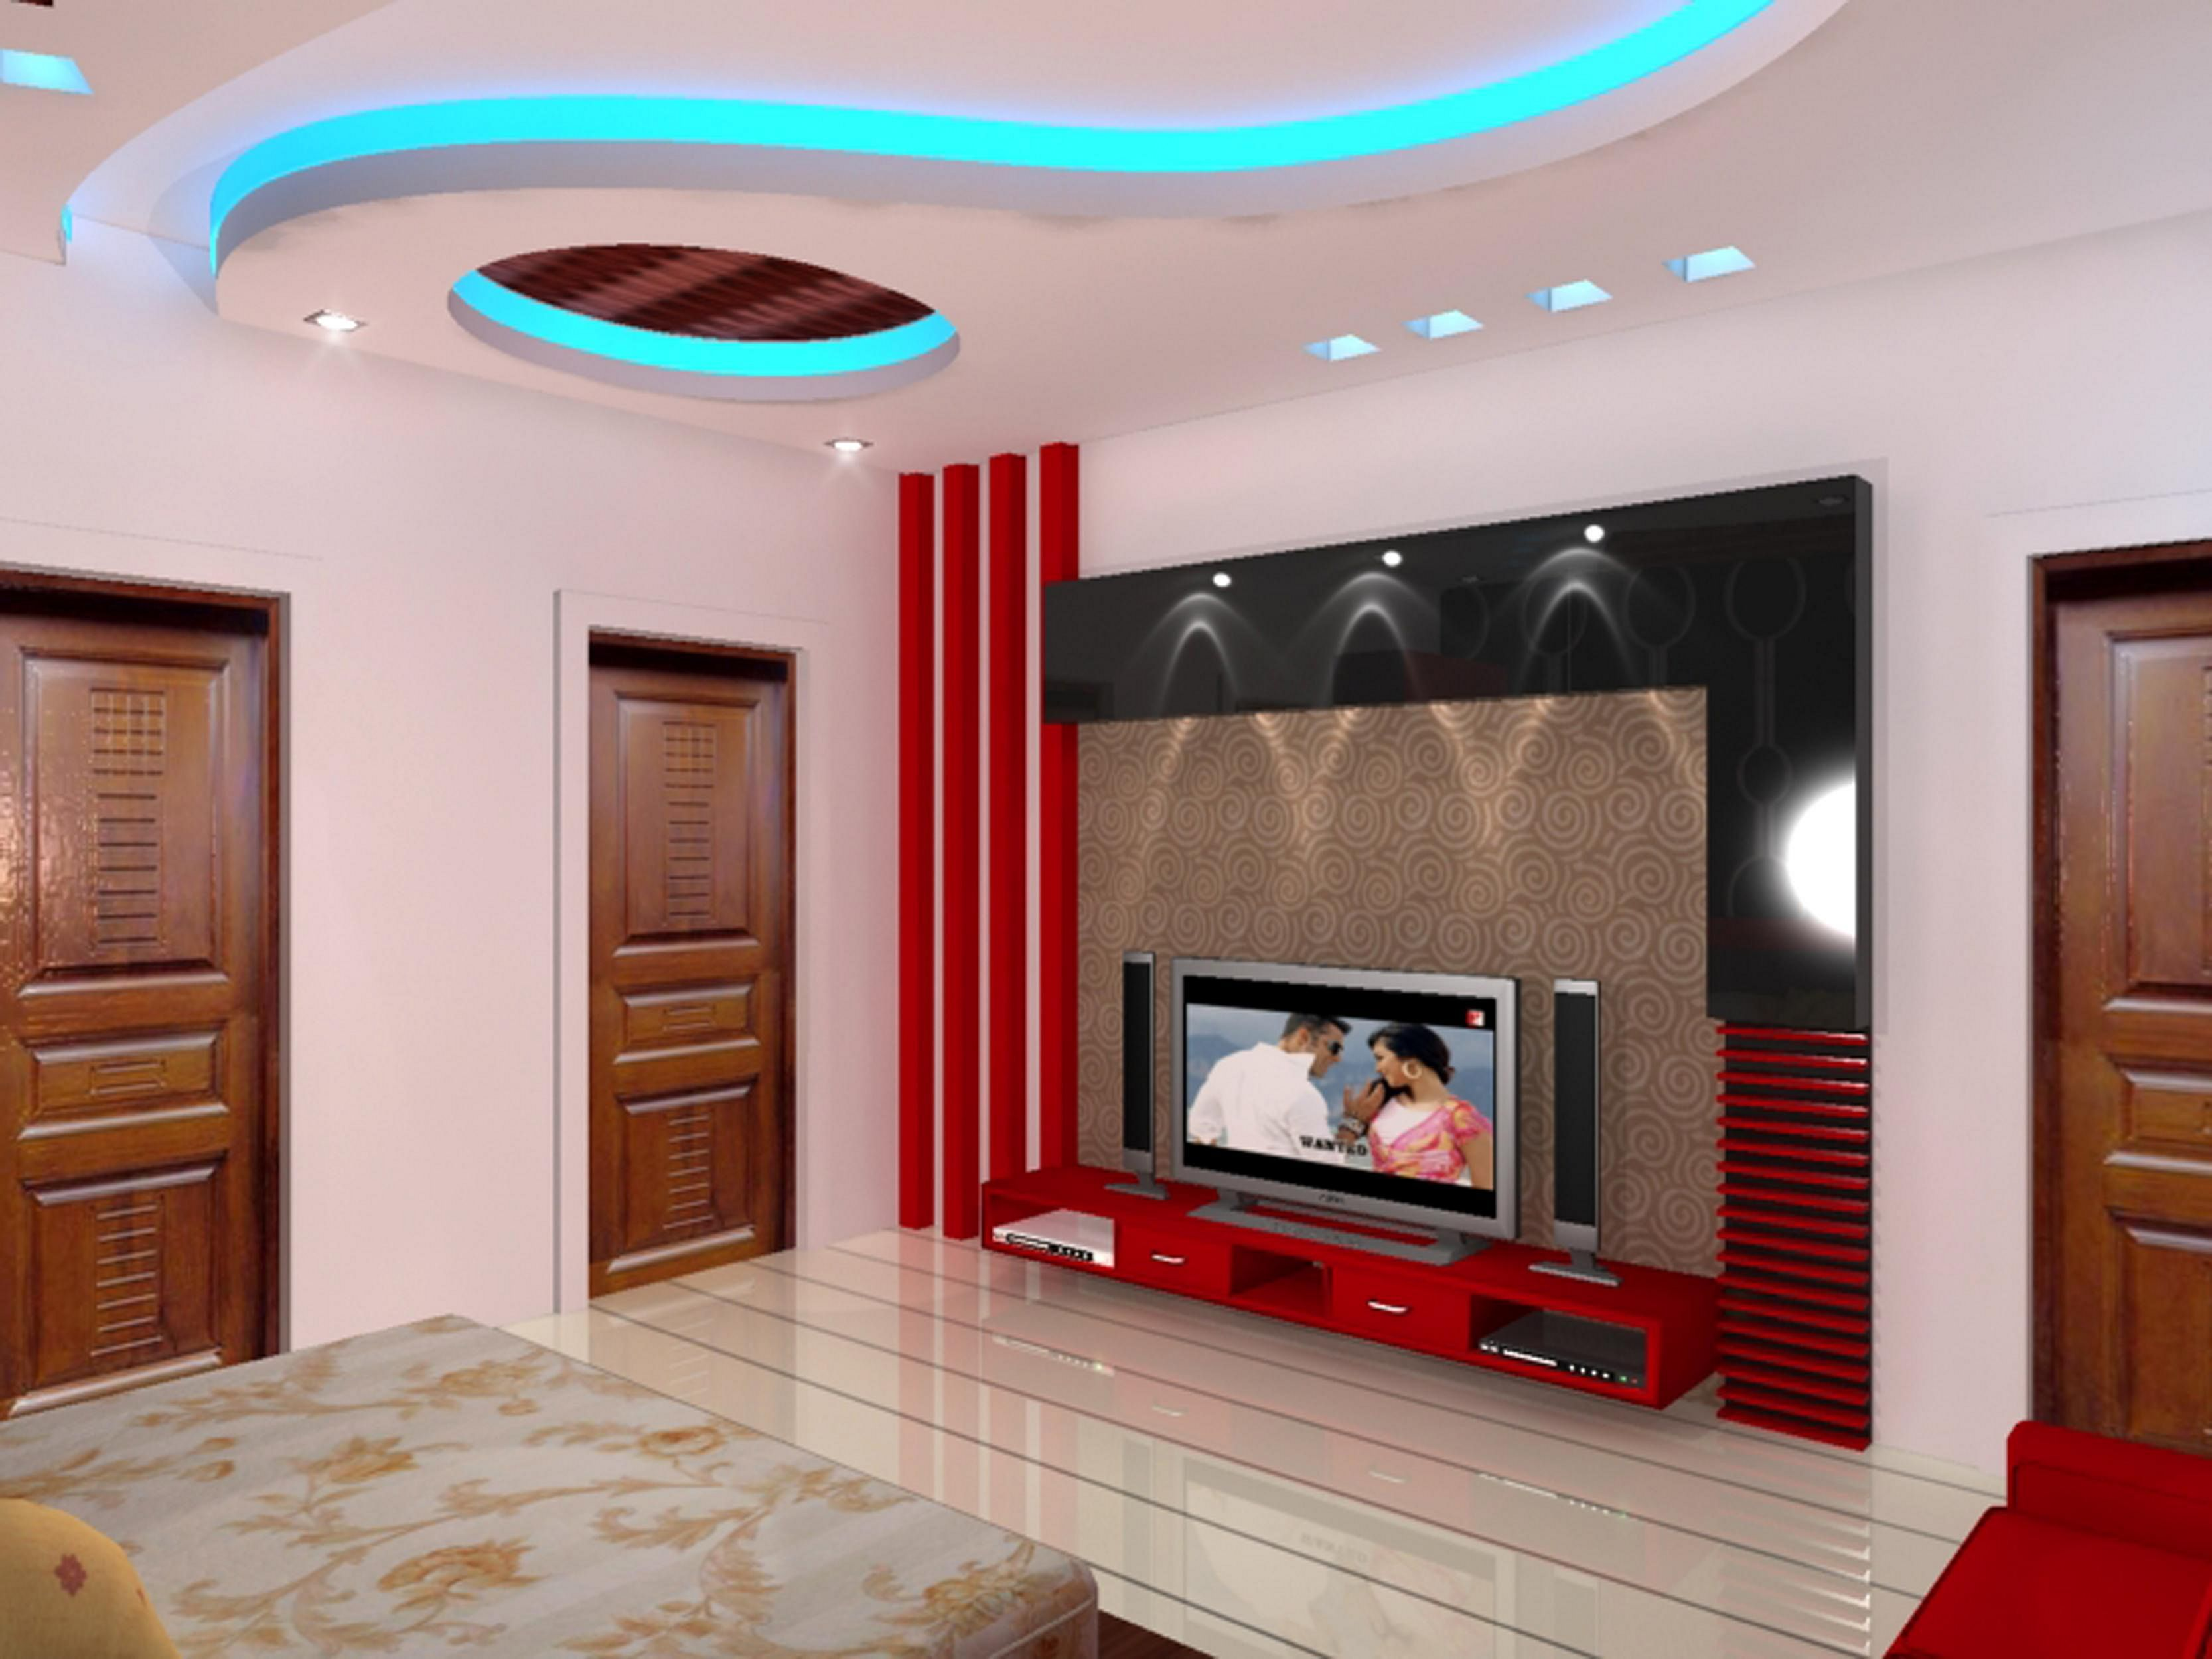 Outstanding 25+ Most Beautiful Home Interior Design Ideas For Your Future  Home https://… | False ceiling design, Simple false ceiling design, Ceiling  design bedroom